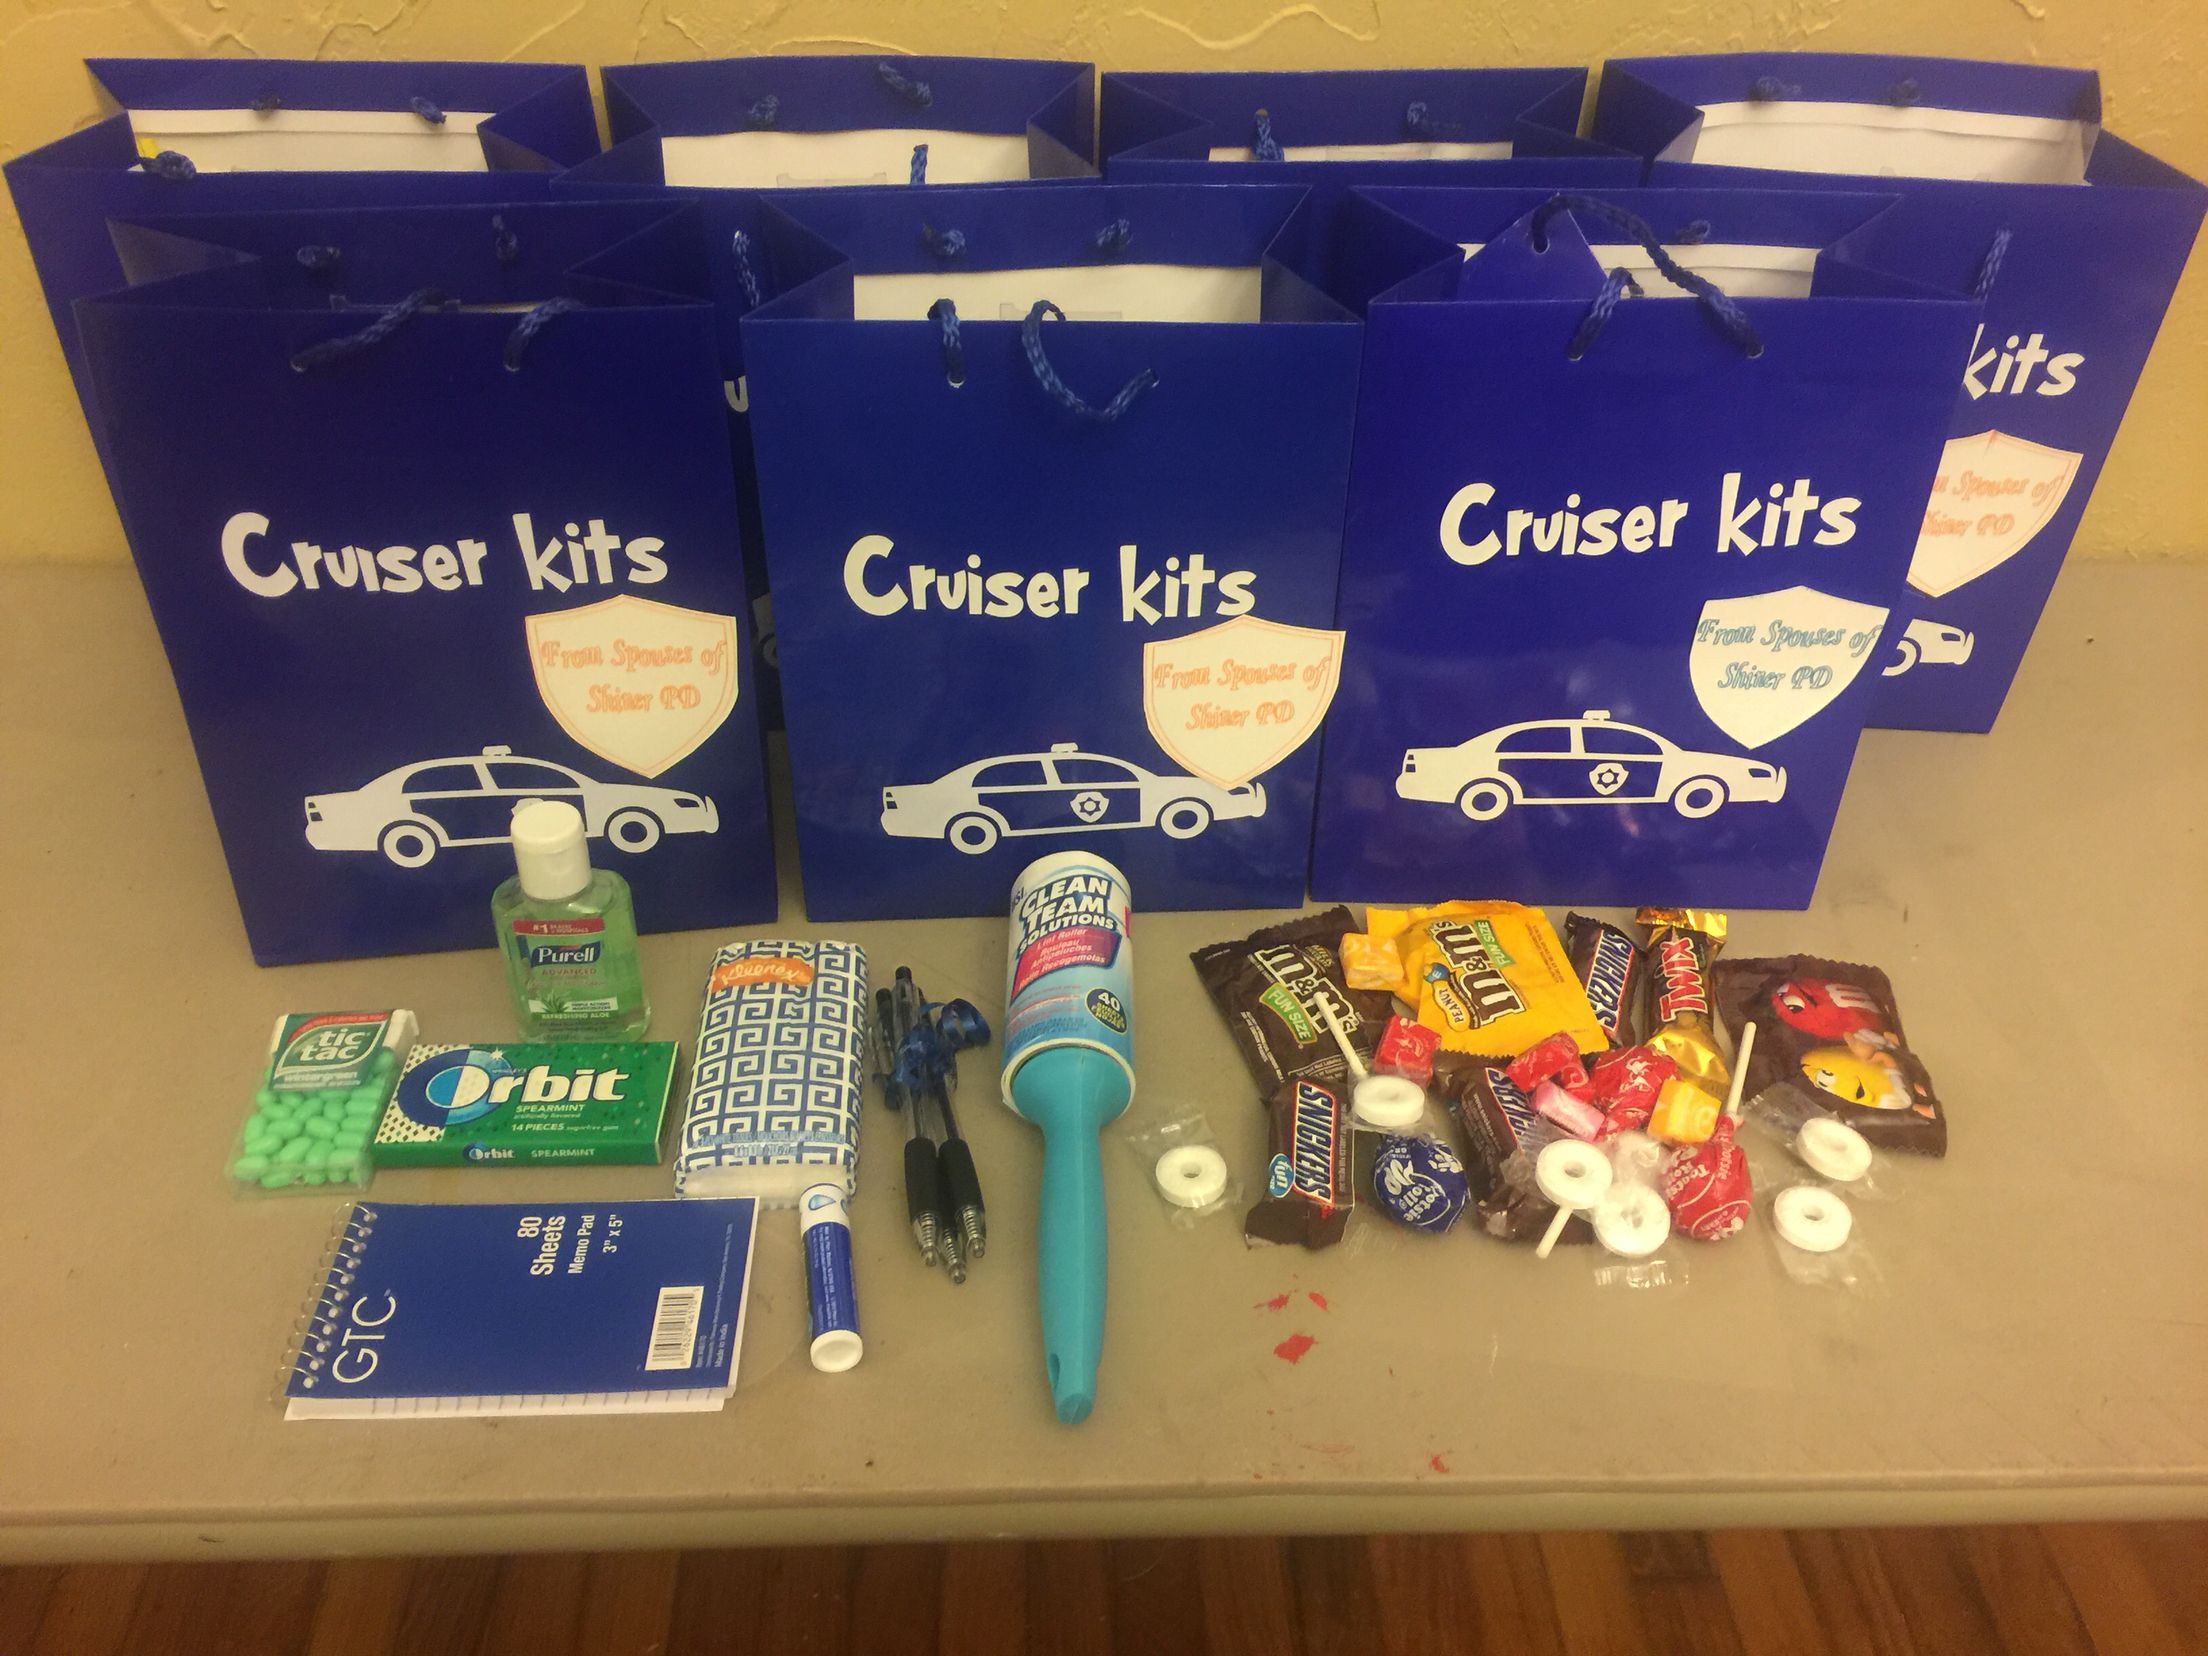 Cruiser kits national police week gifts (With images